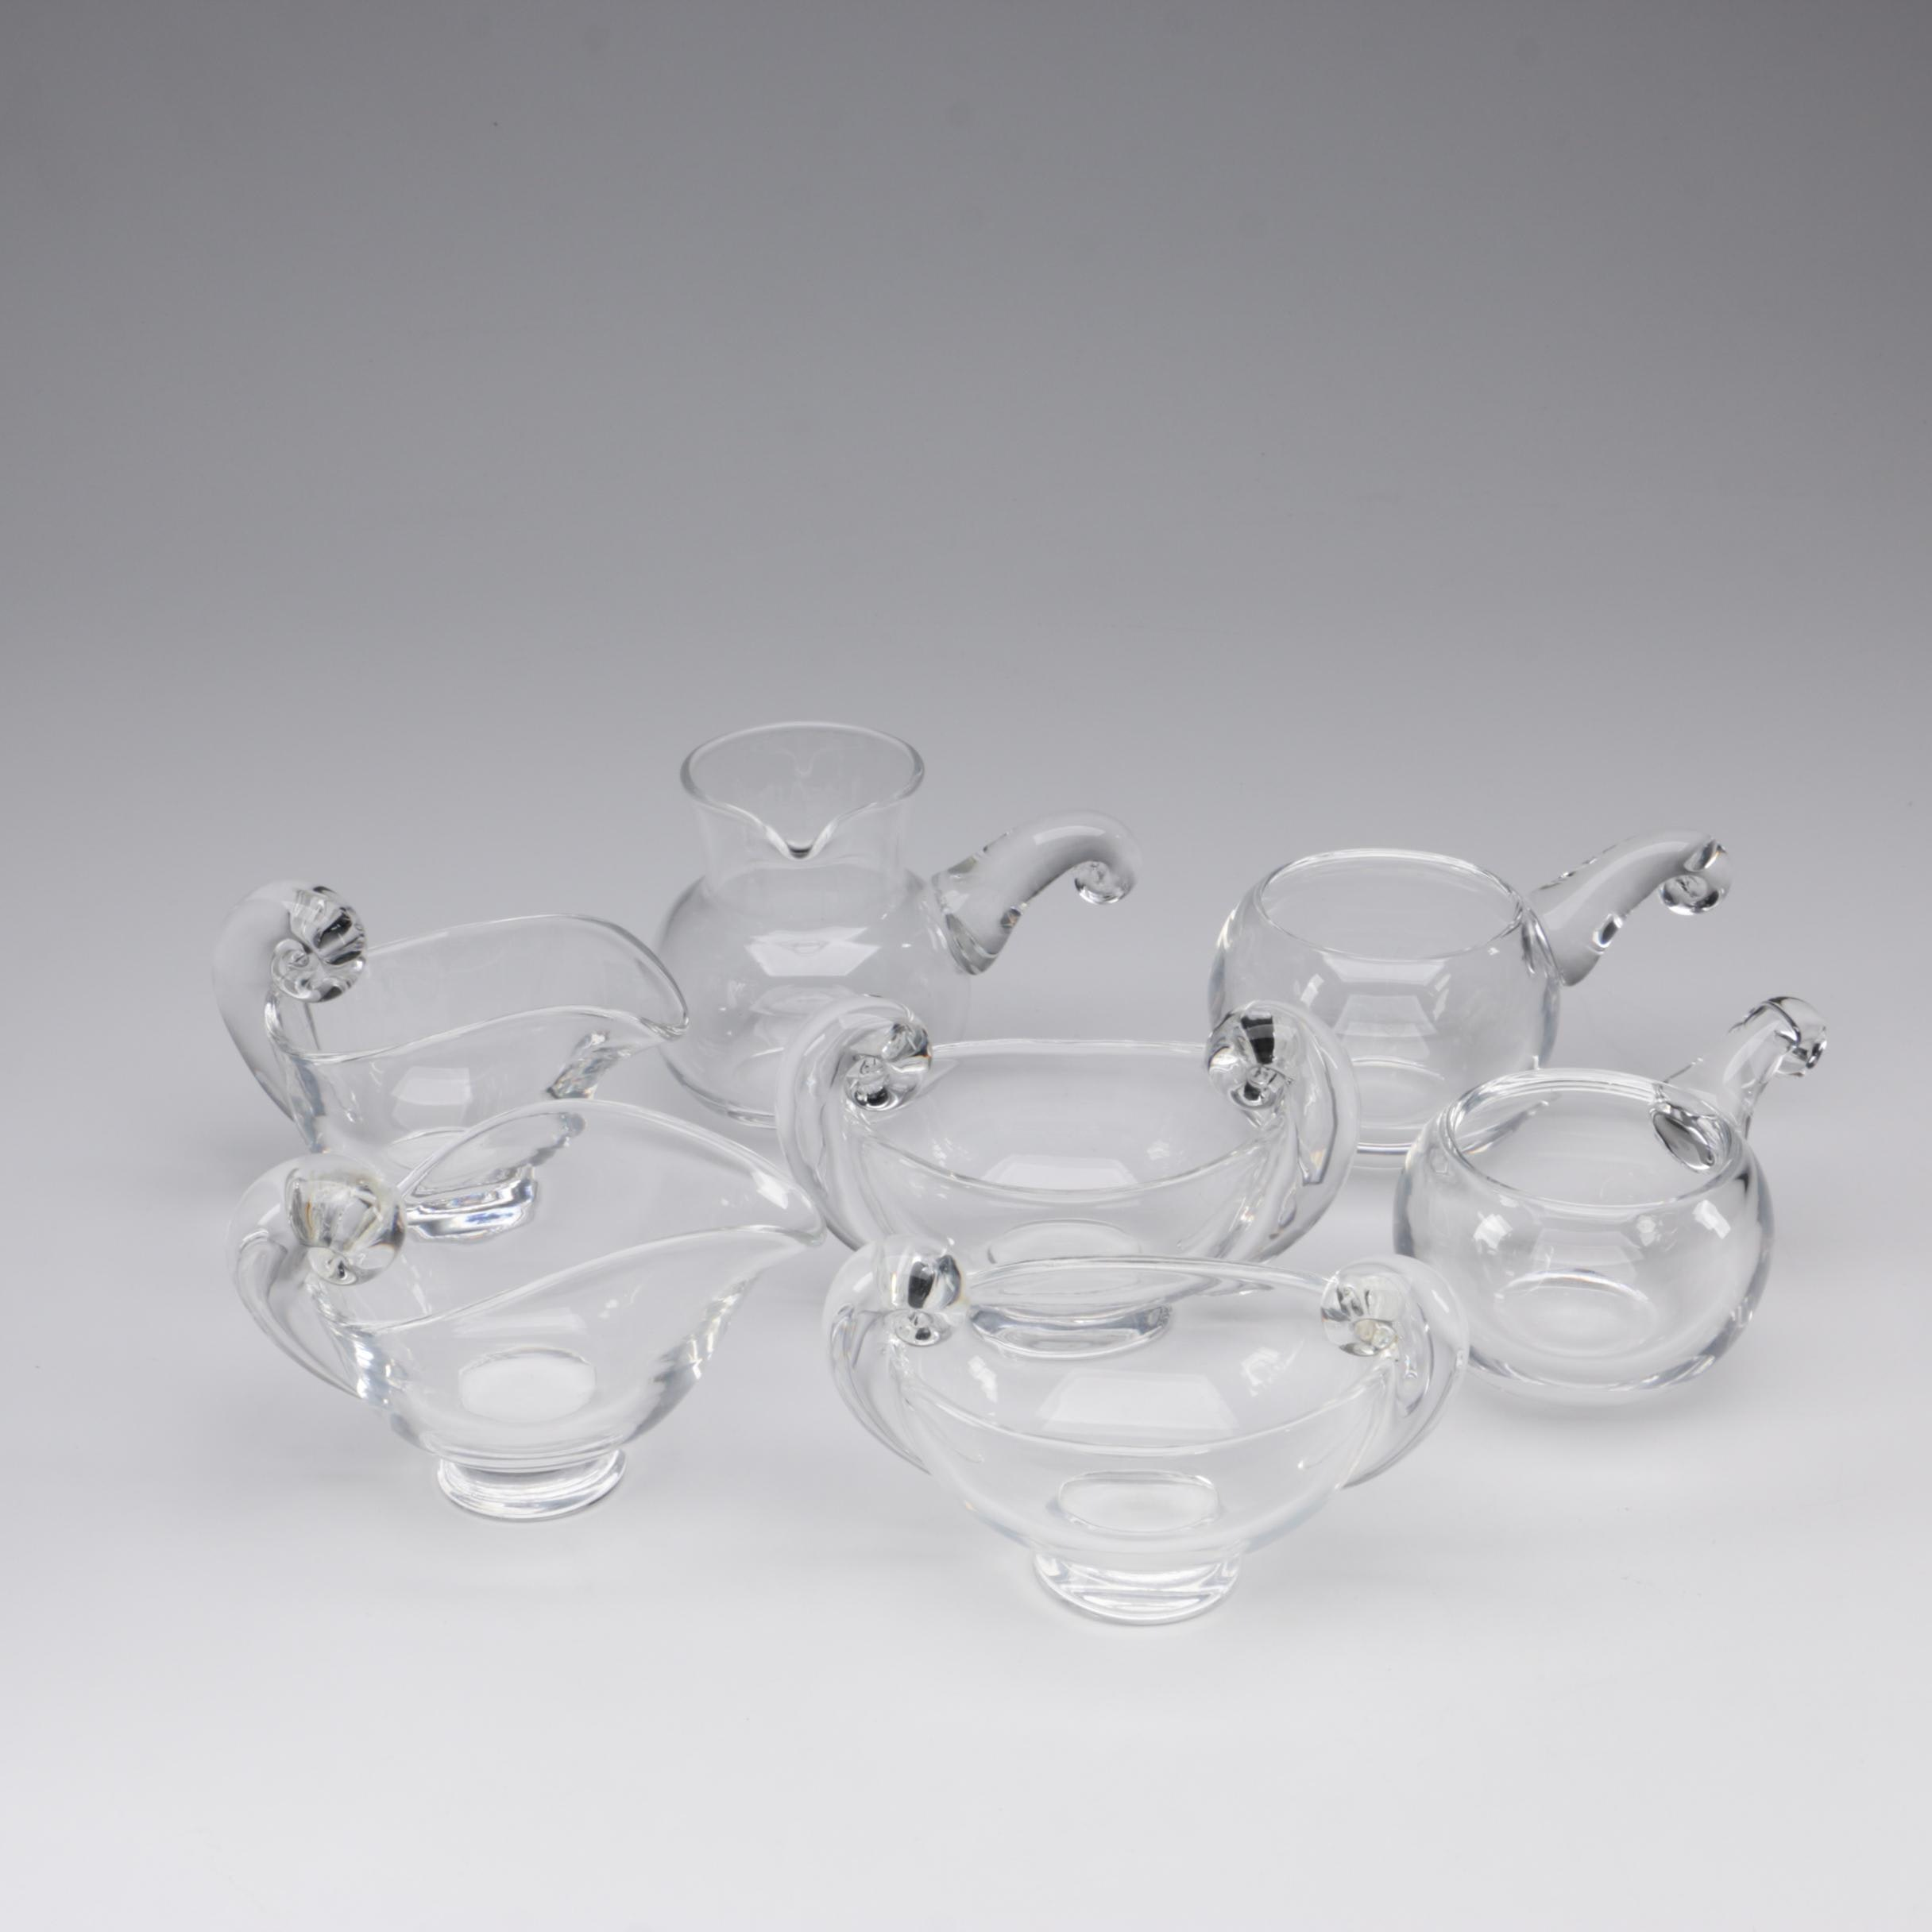 Steuben Art Glass Sugar Bowls and Creamers